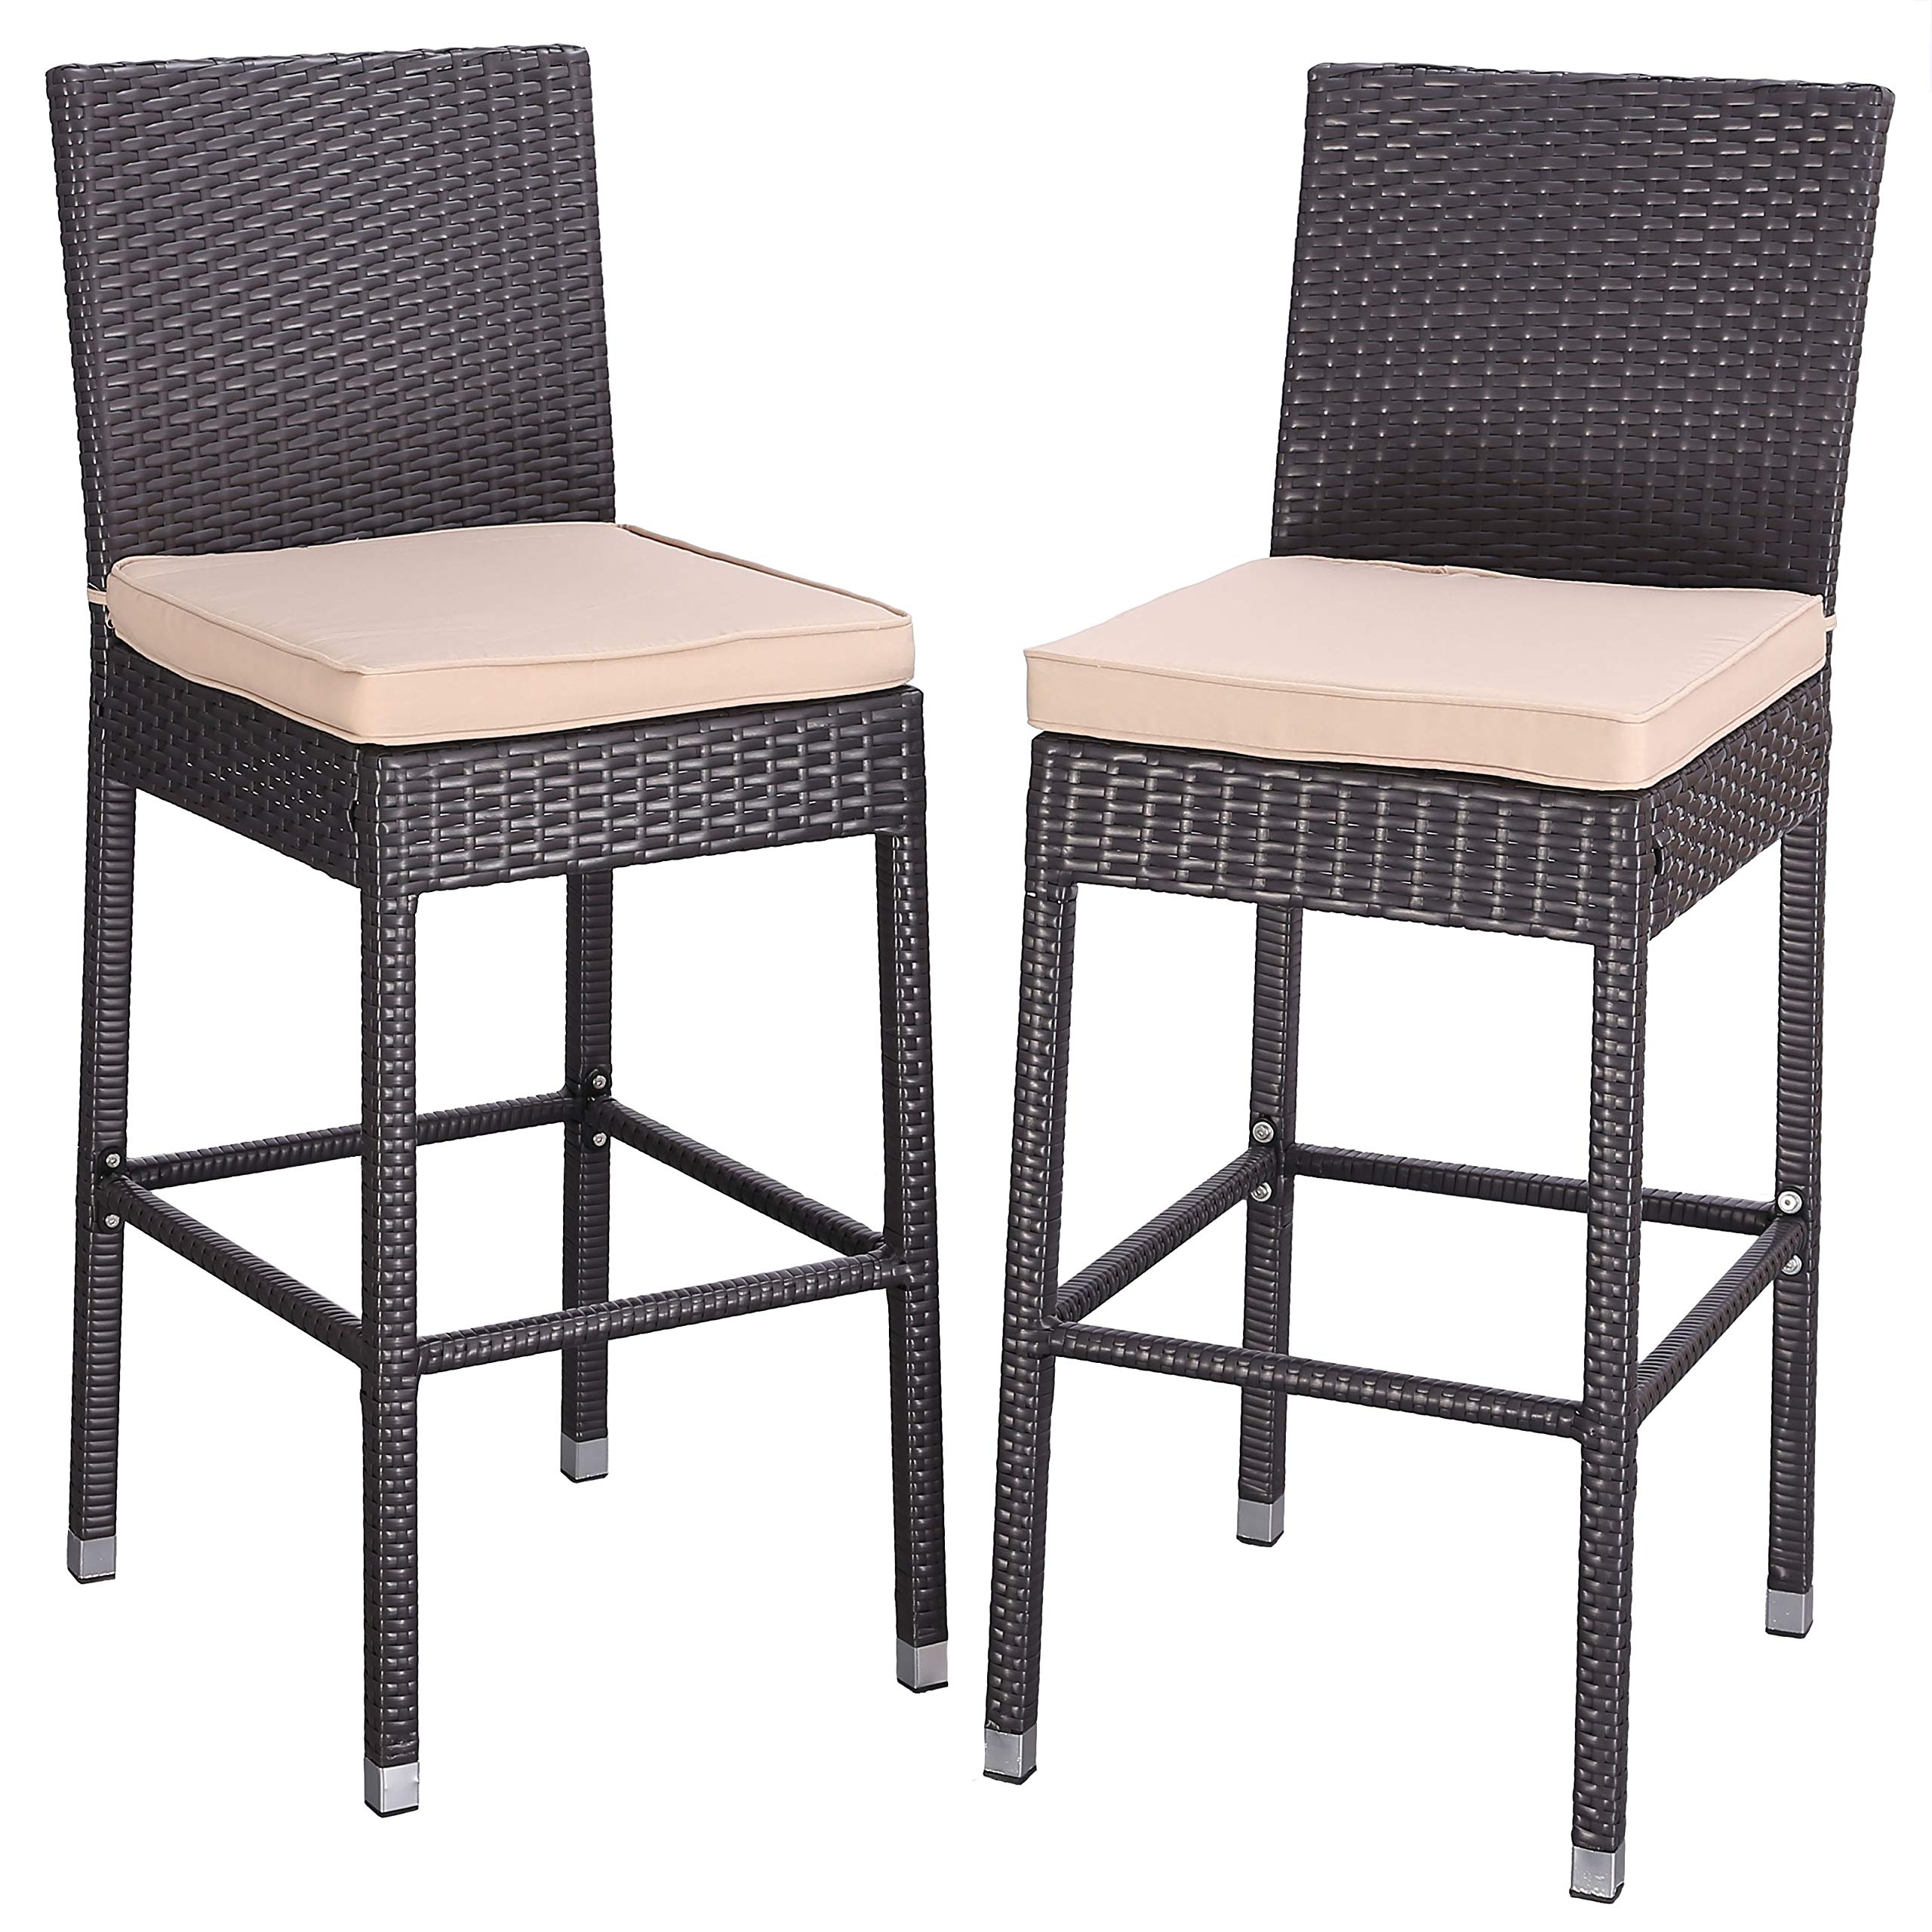 Do4U Set of 2 Patio Bar Stools All-Weather Wicker Outdoor Furniture Chair, Bar Chairs with Brown Cushions & Footrest | Garden Pool Lawn Backyard | Steel Frame| Barstools (668-EXP-BRN)